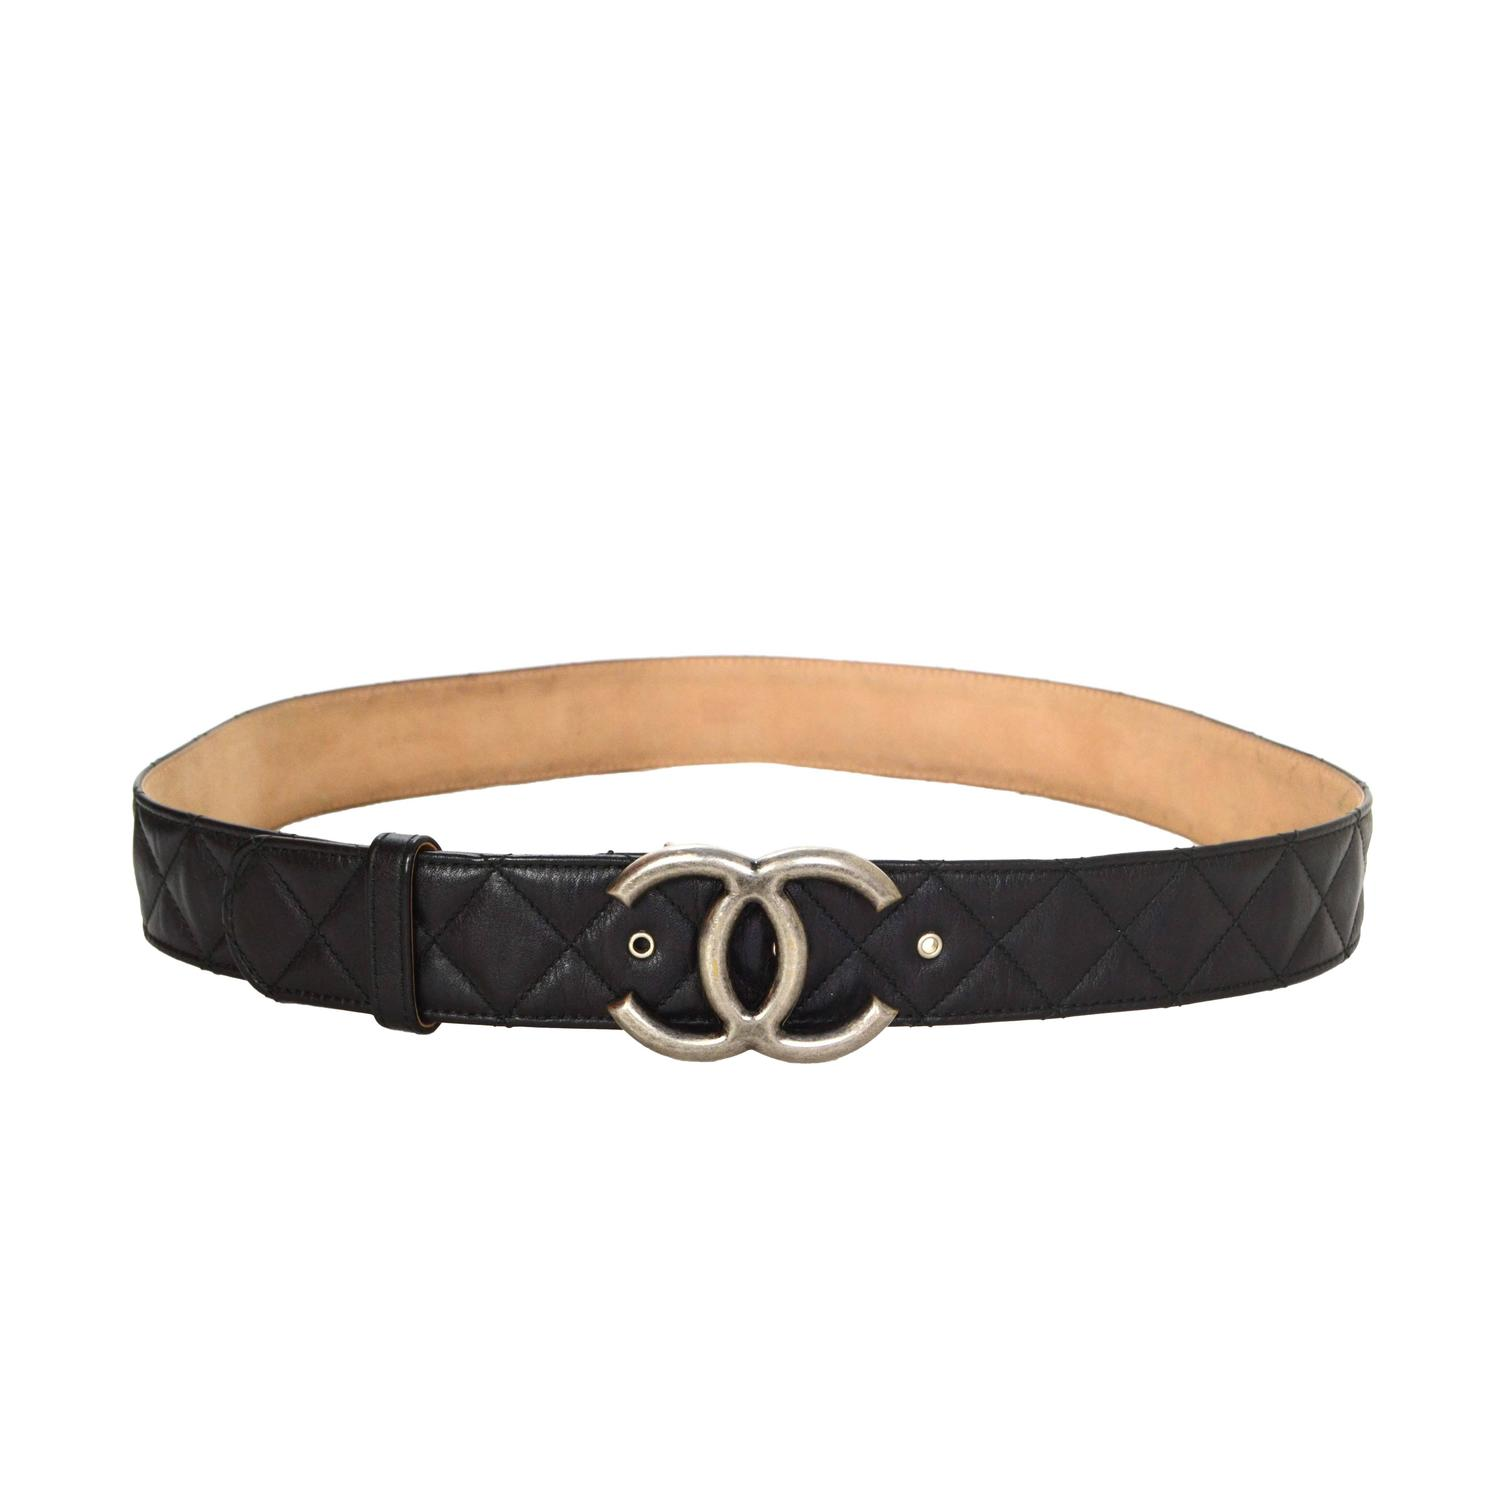 Chanel Black Quilted Leather Belt Sz 90 At 1stdibs